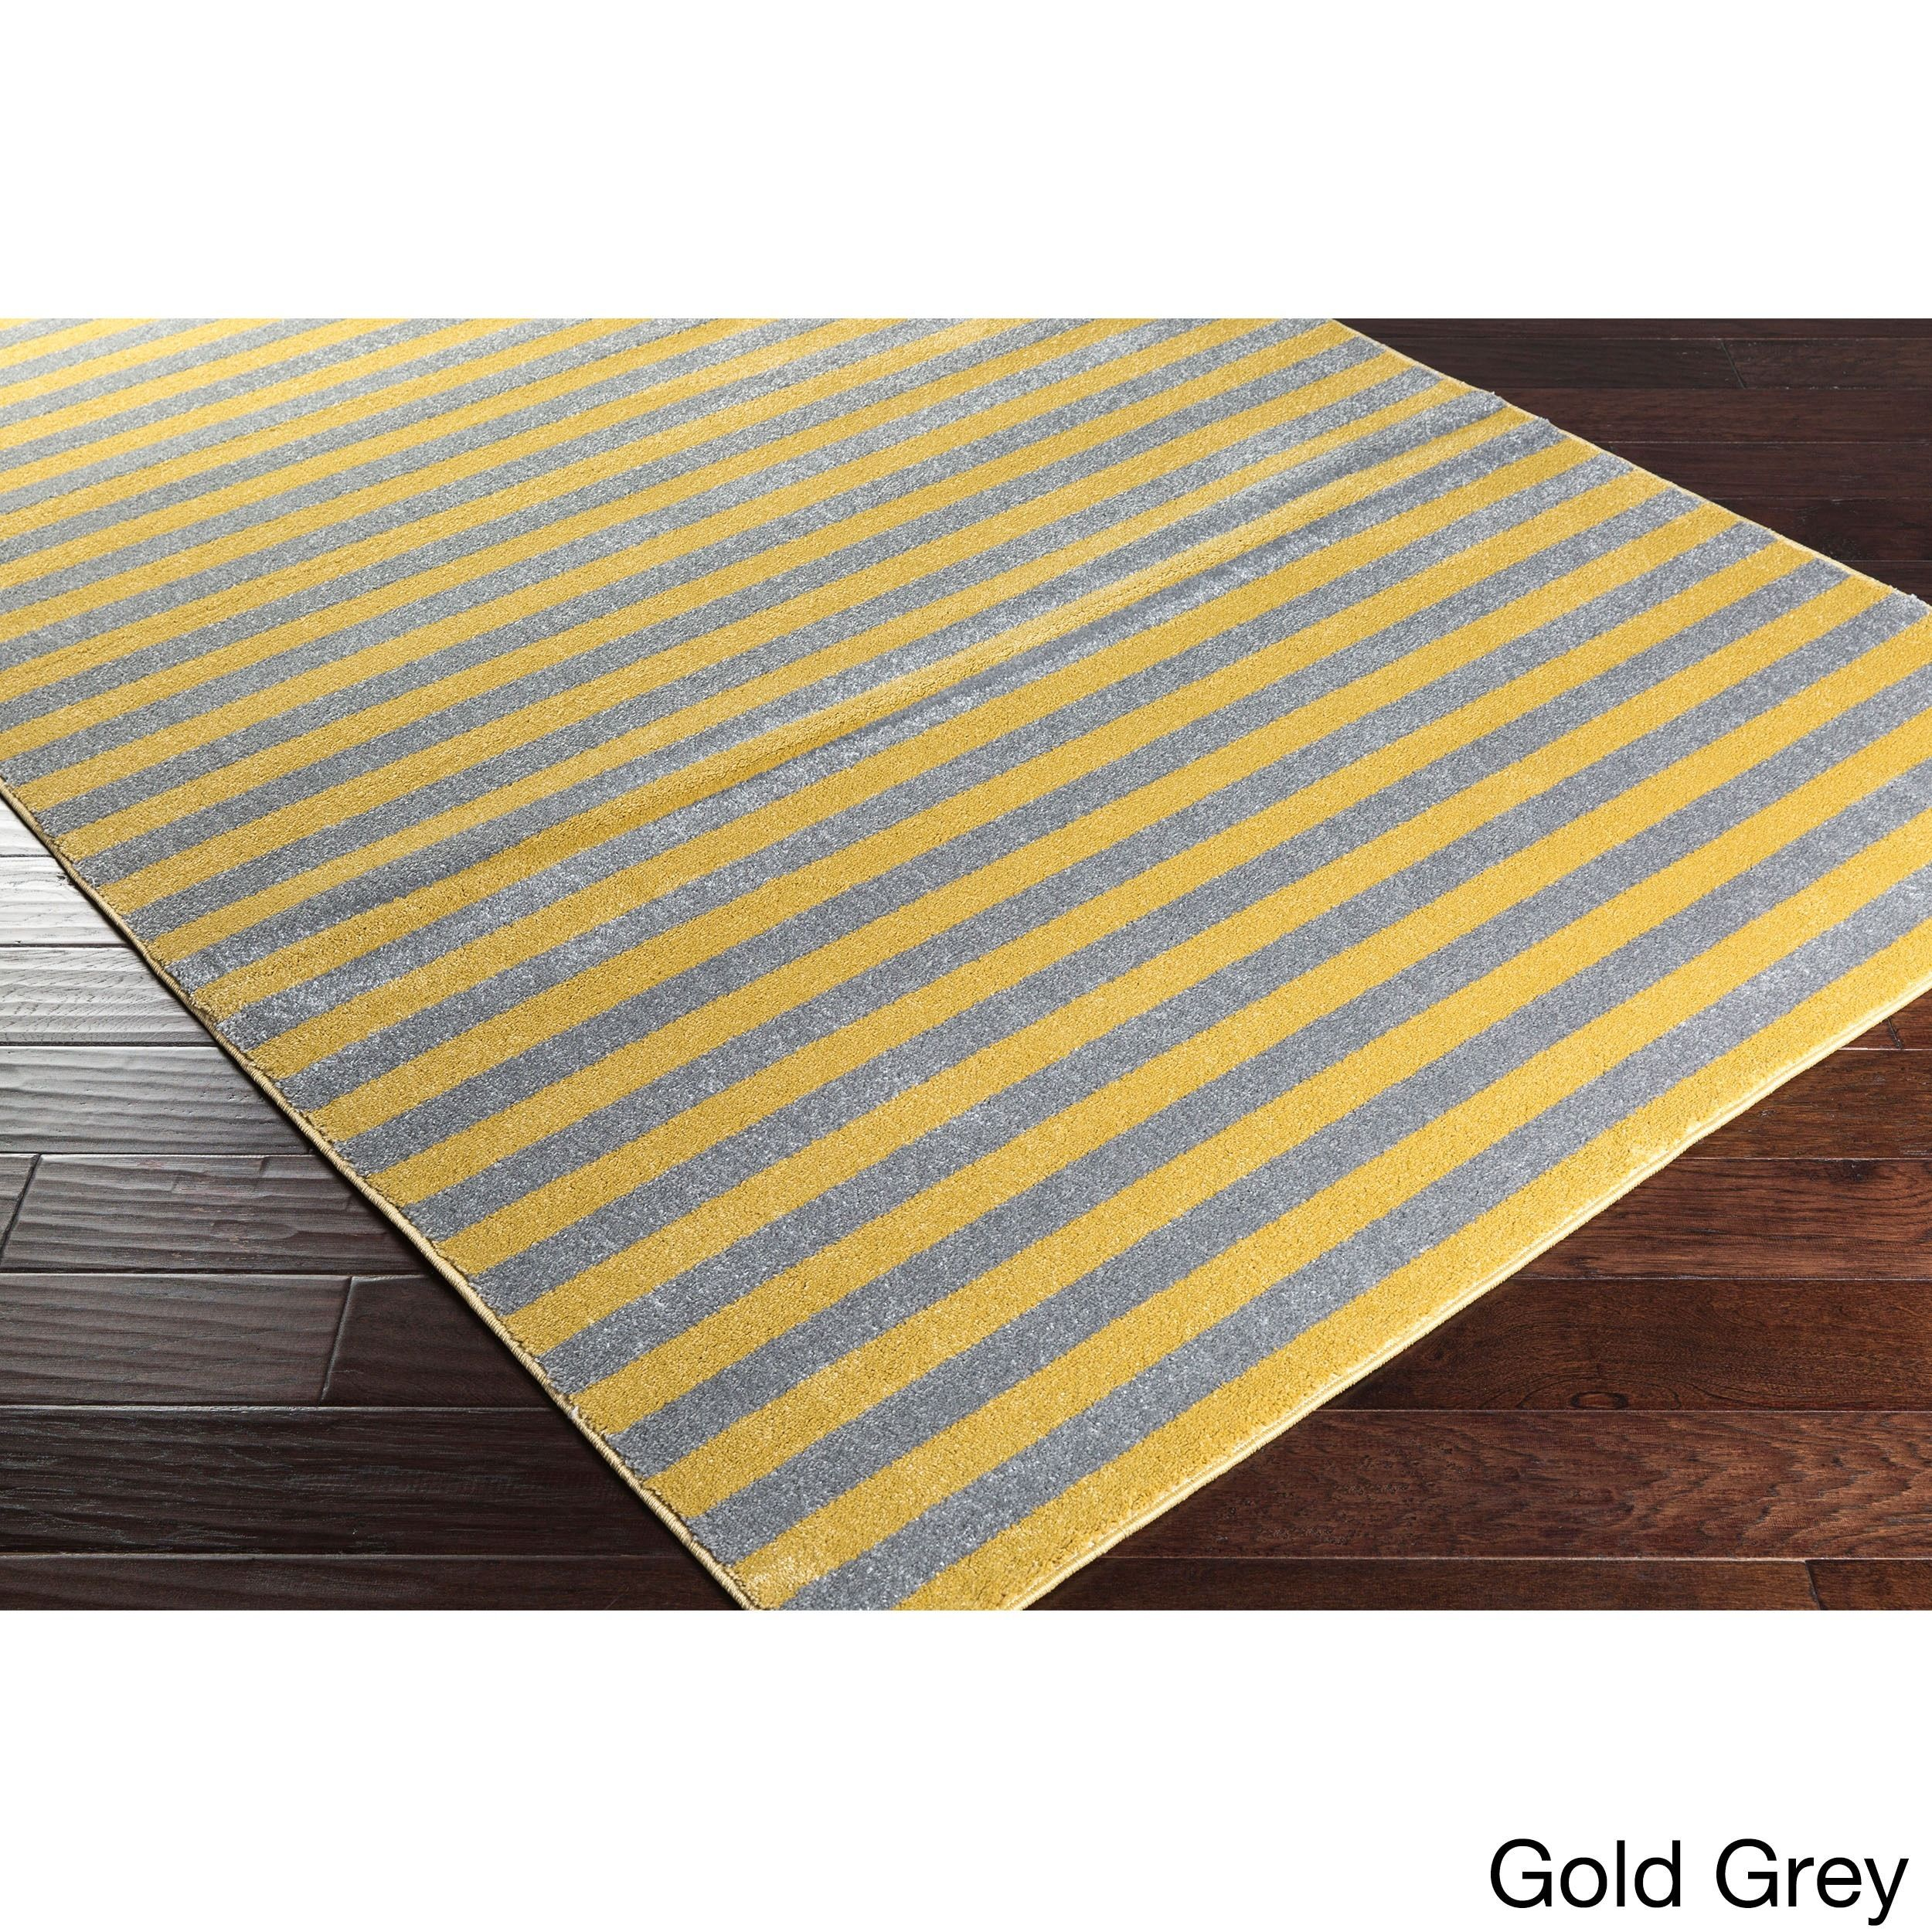 Meticulously Woven Reze Casual Striped Area Rug (7'10 x 10'3) (Gold and grey), Size 8' x 10'